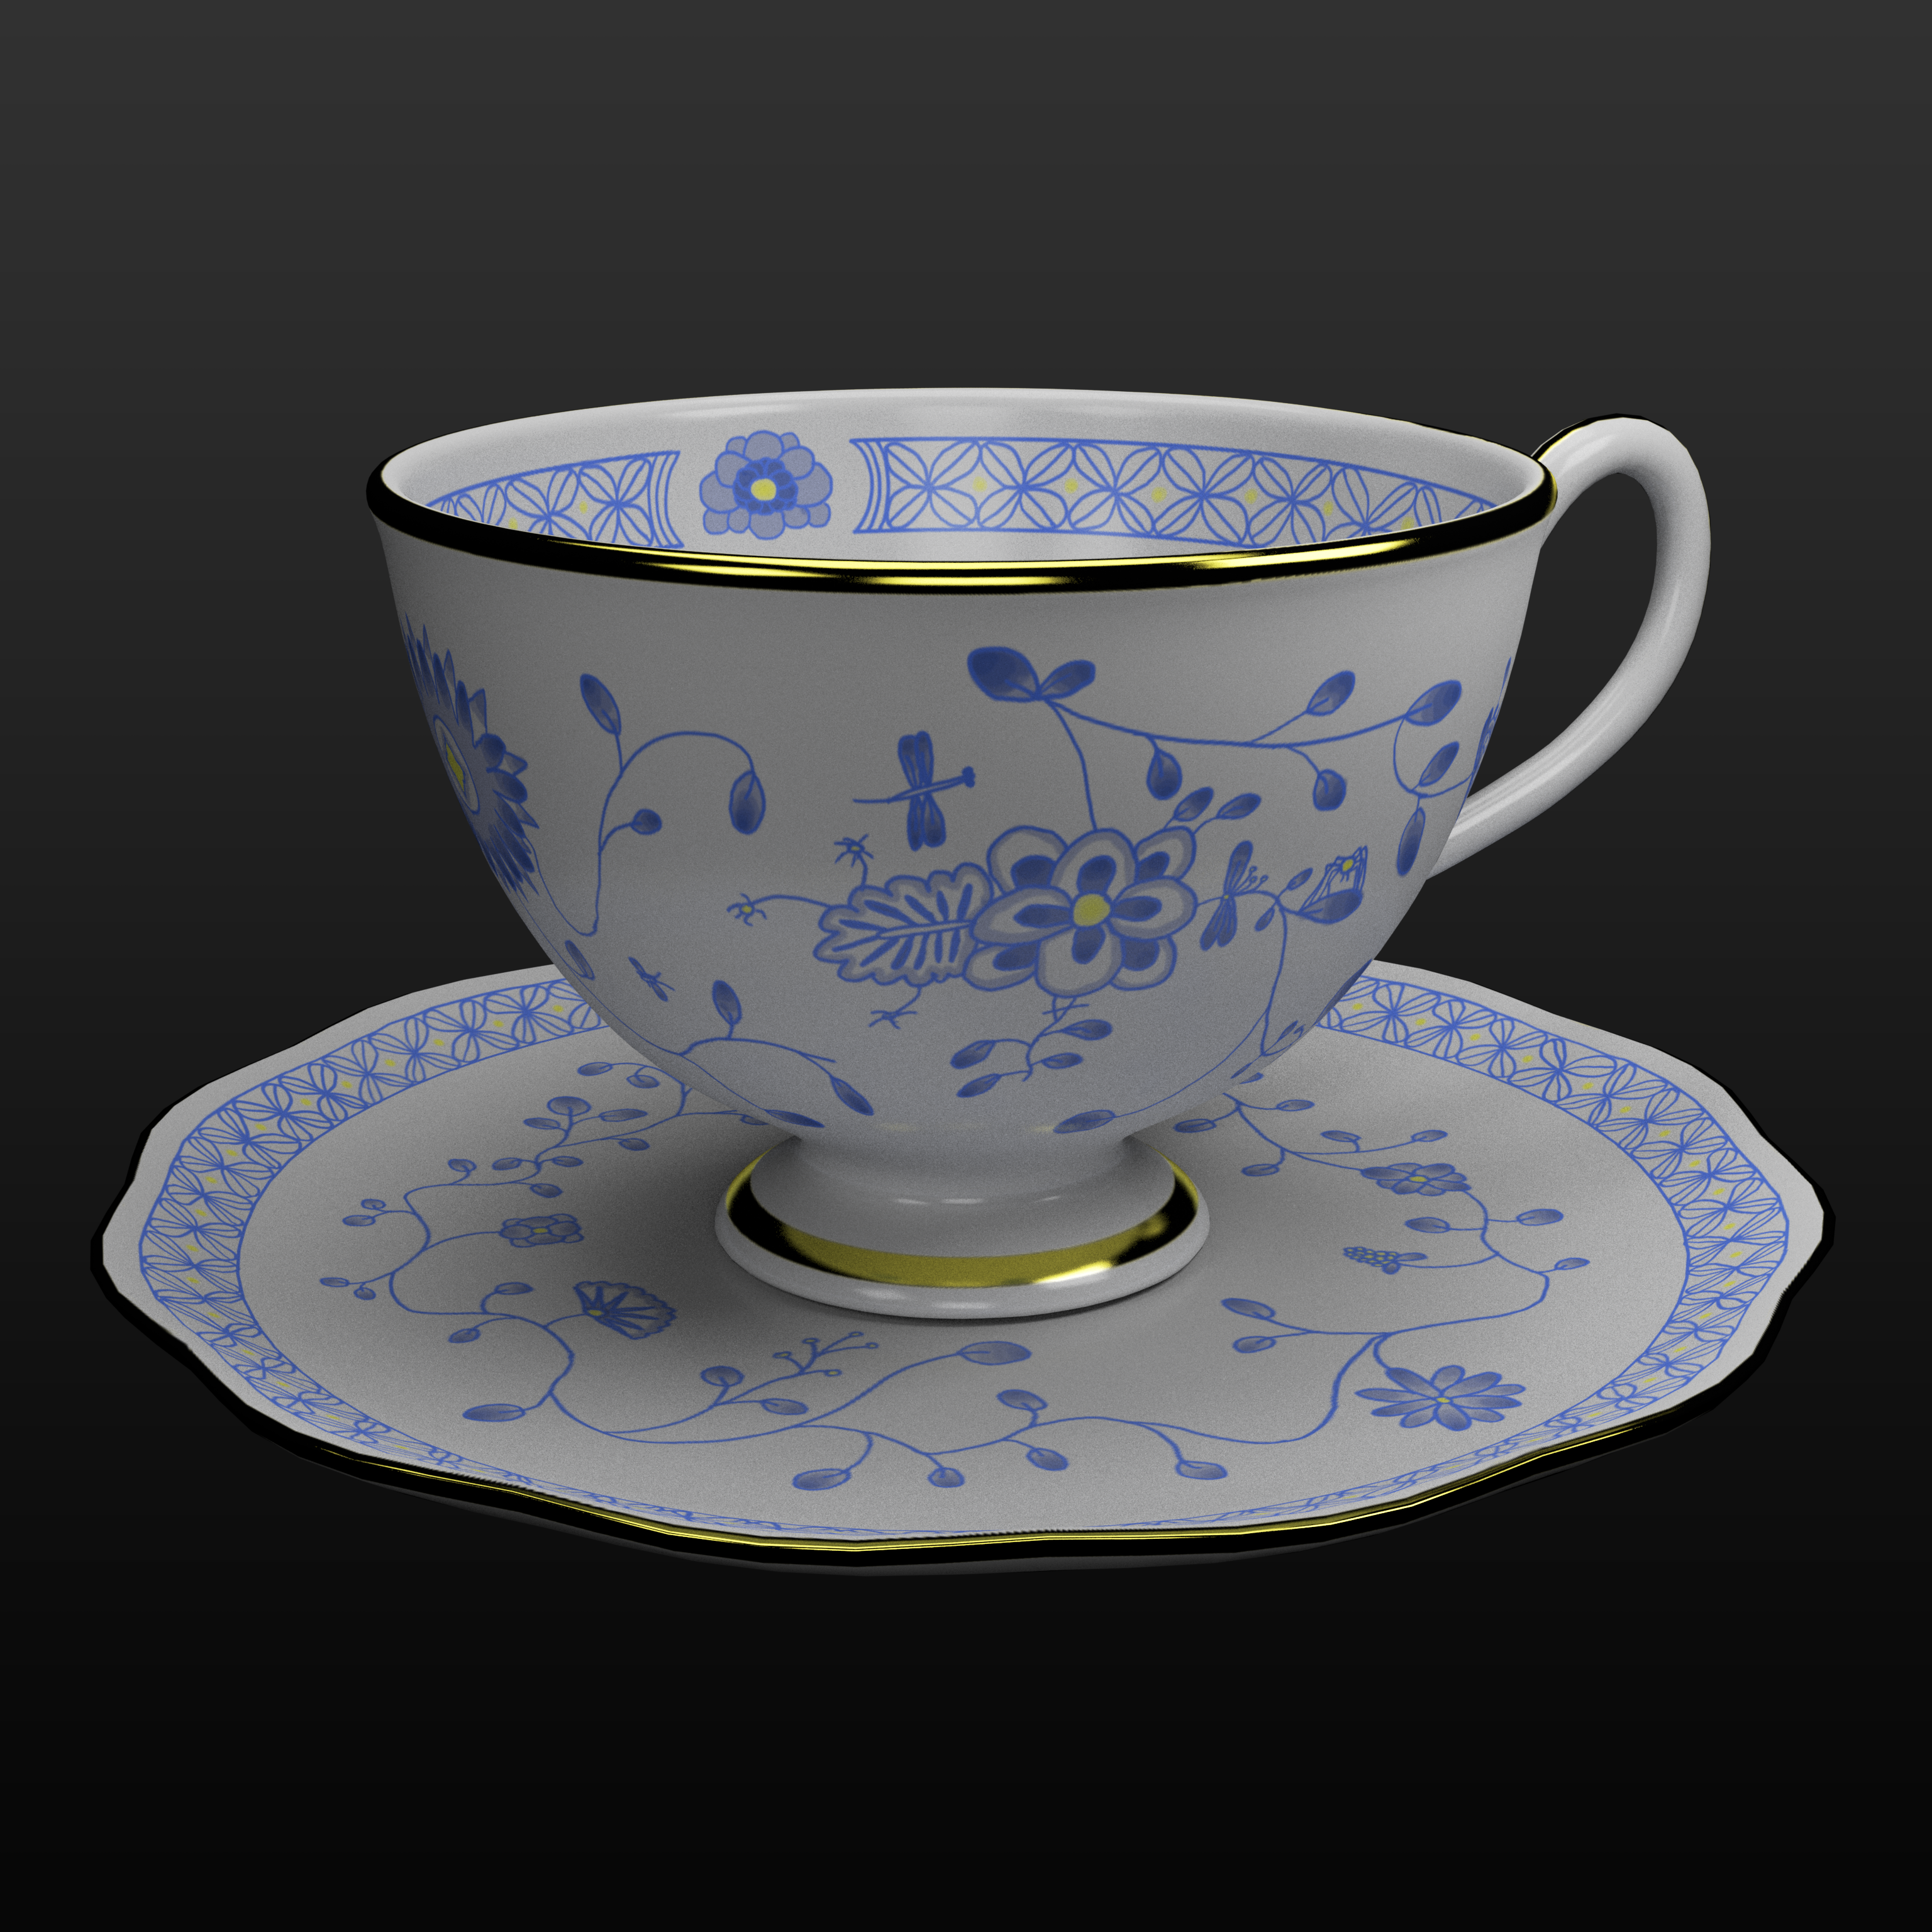 tea_dish__perspShape_beauty.0002.png